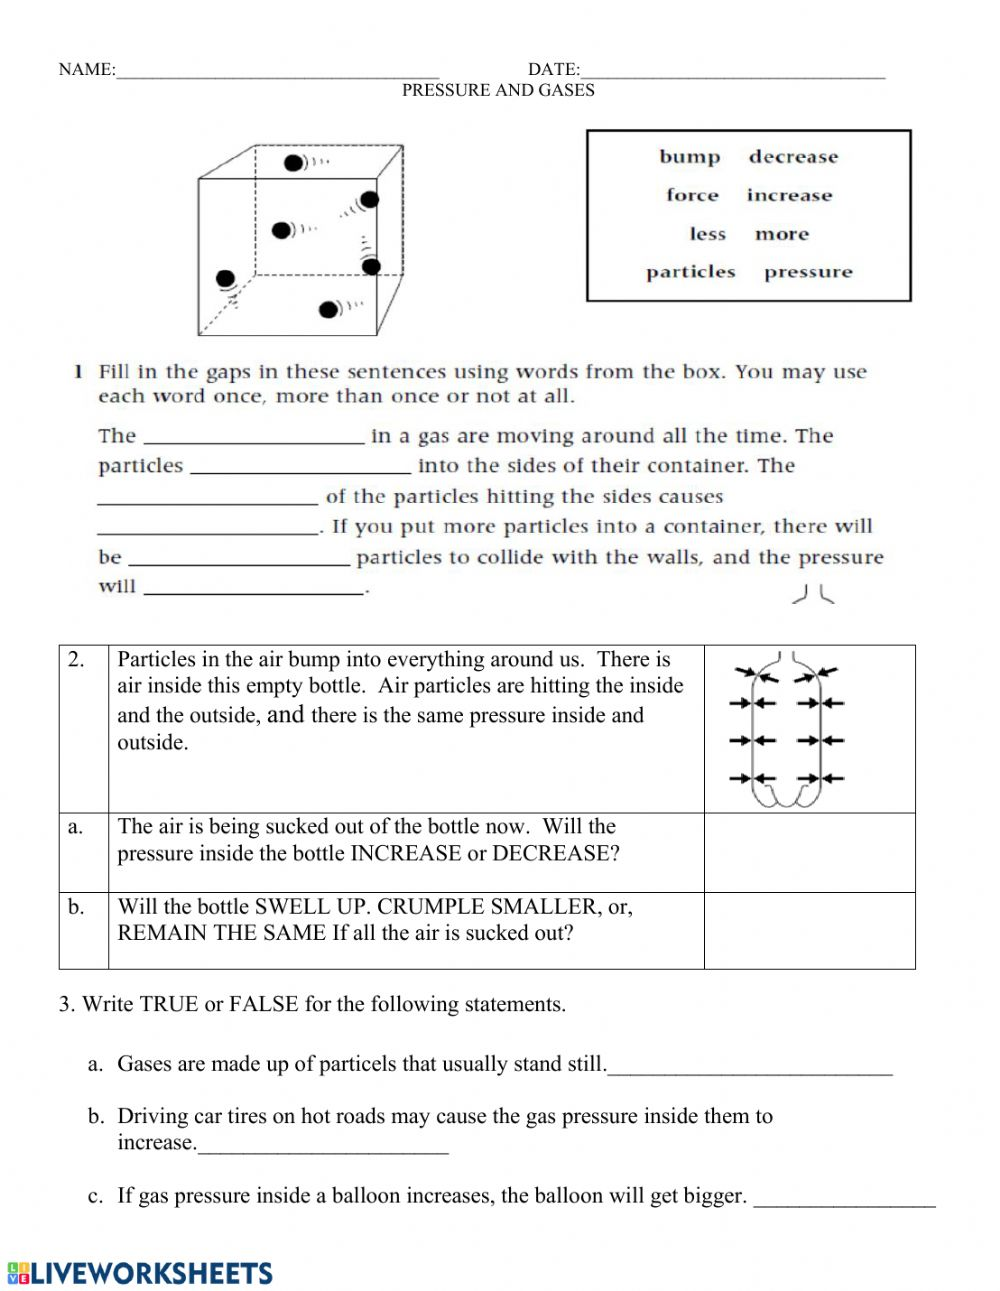 Gas pressure worksheet 2